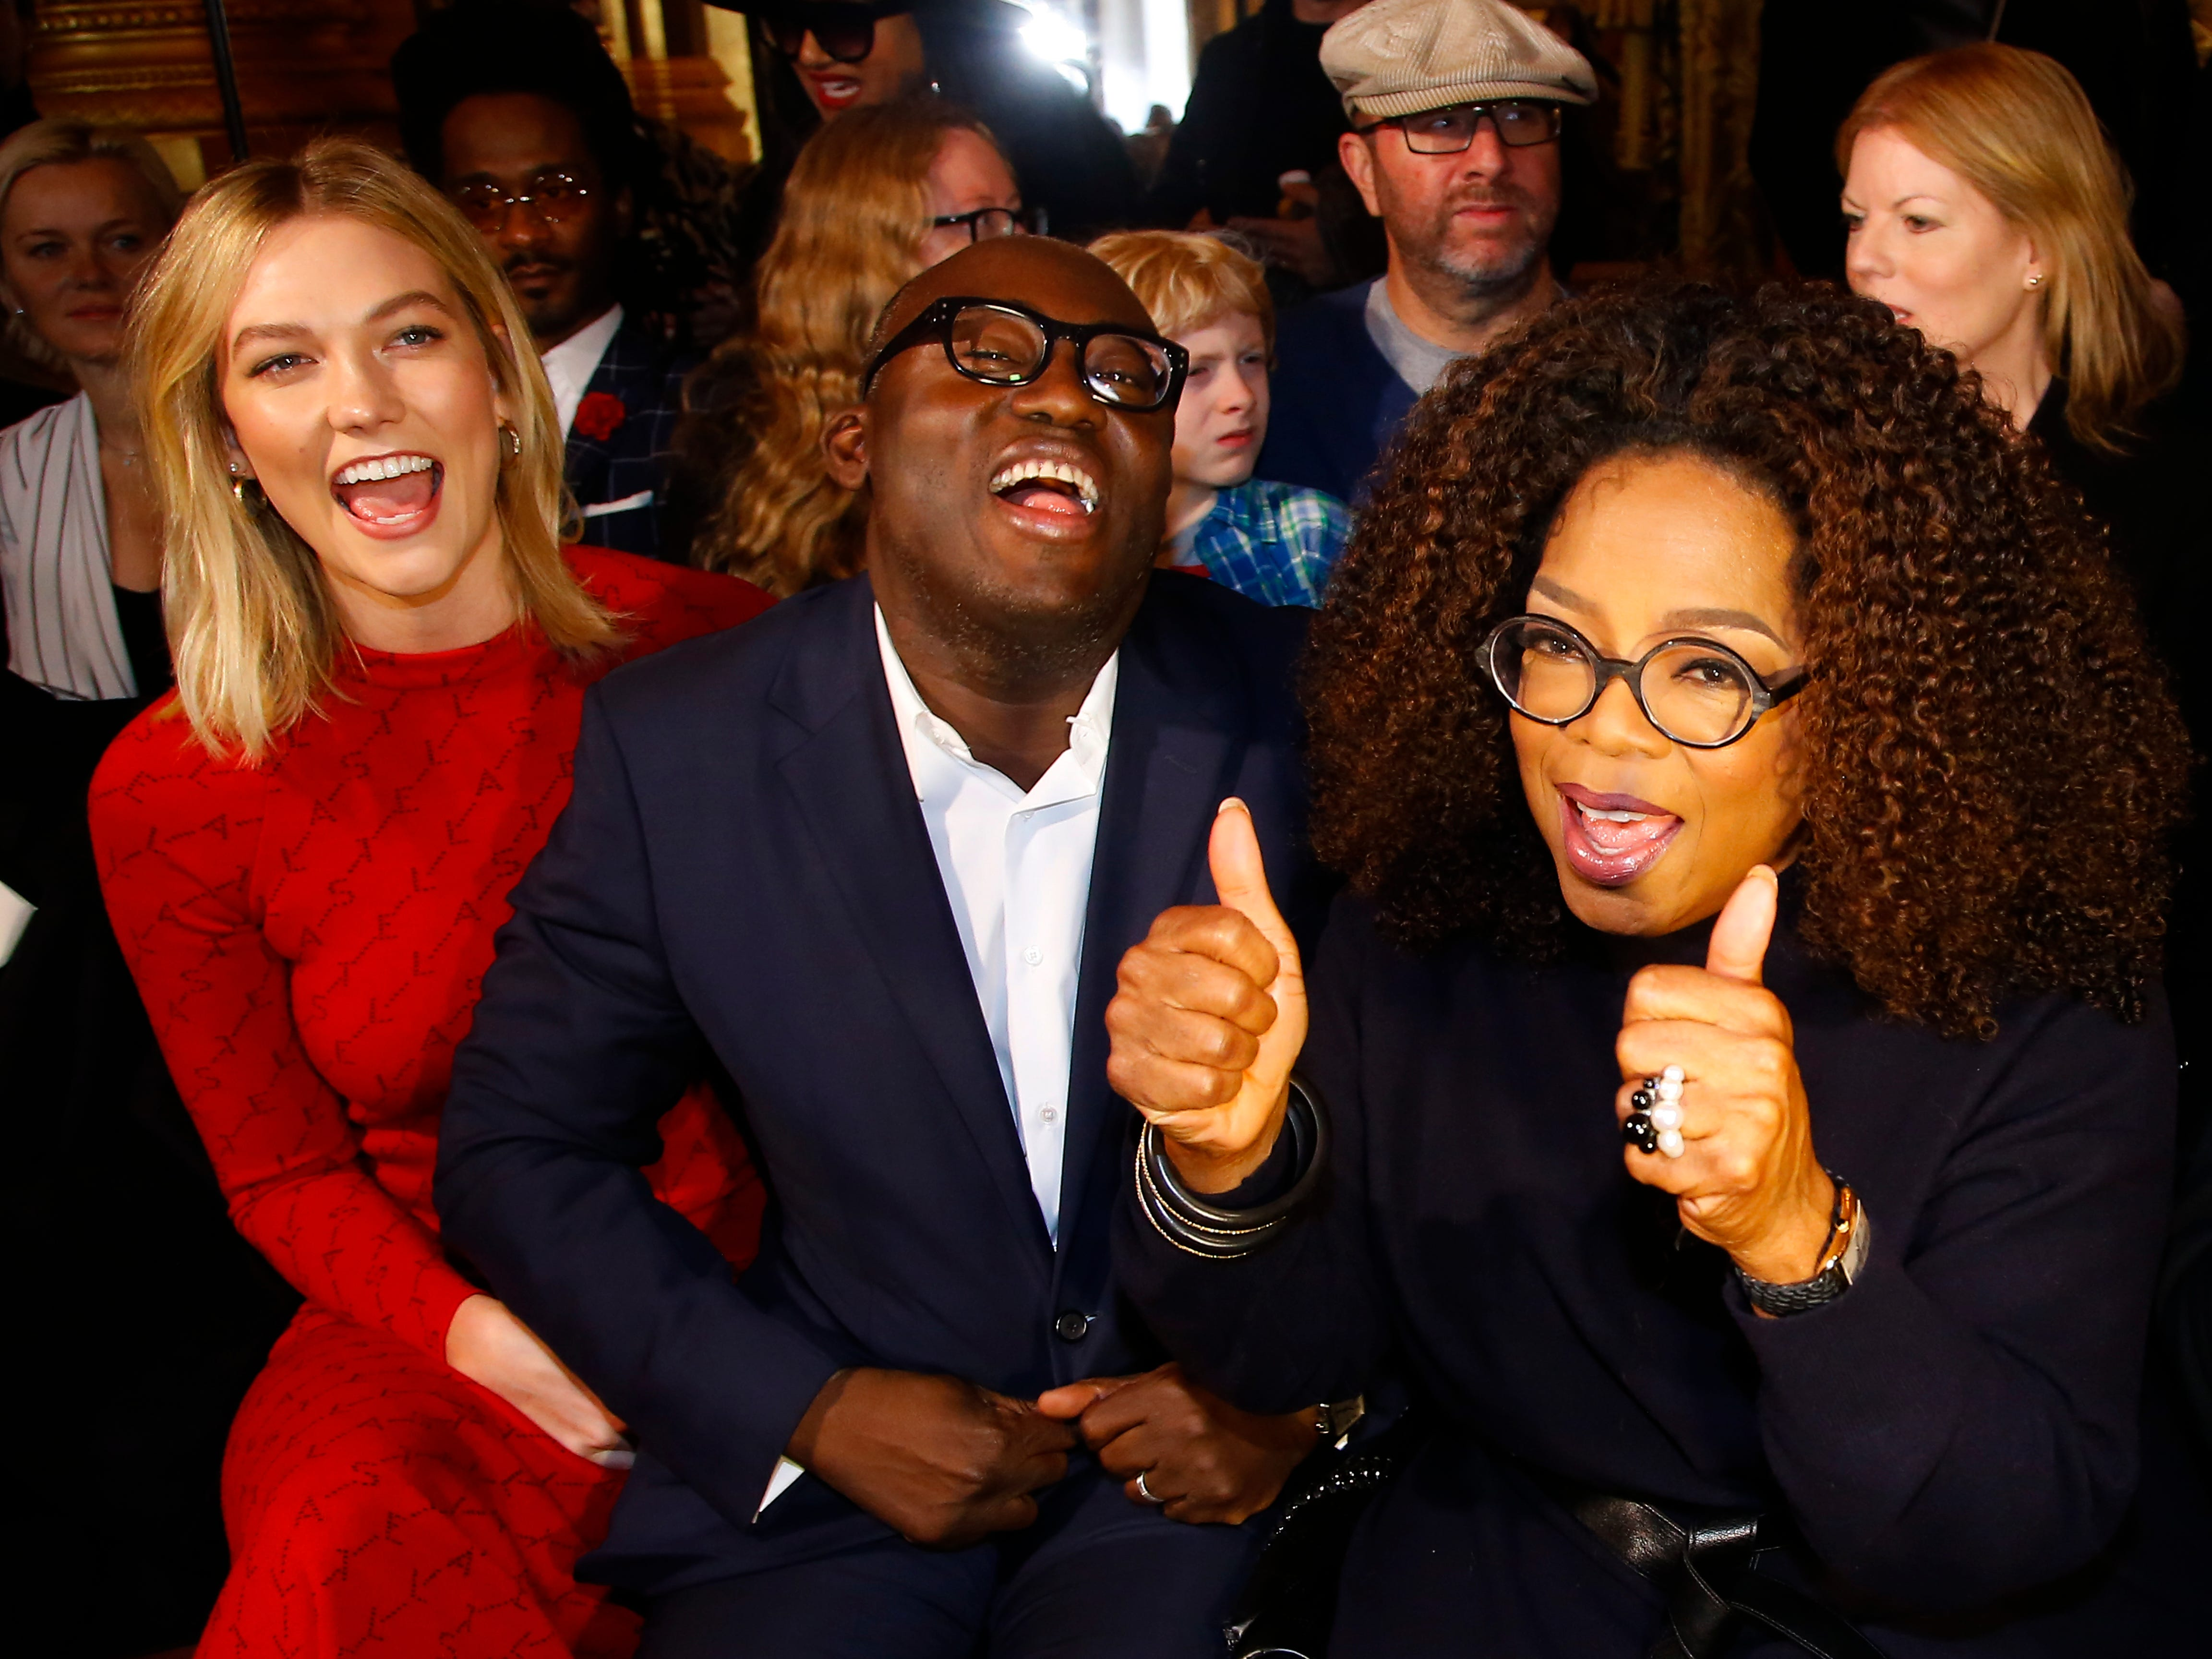 Model Karlie Kloss, left, British Vogue editor Edward Enninful, center, and Oprah Winfrey amuse themselves before the start of Stella McCartney's Paris Fashion Week show on March 4, 2019.